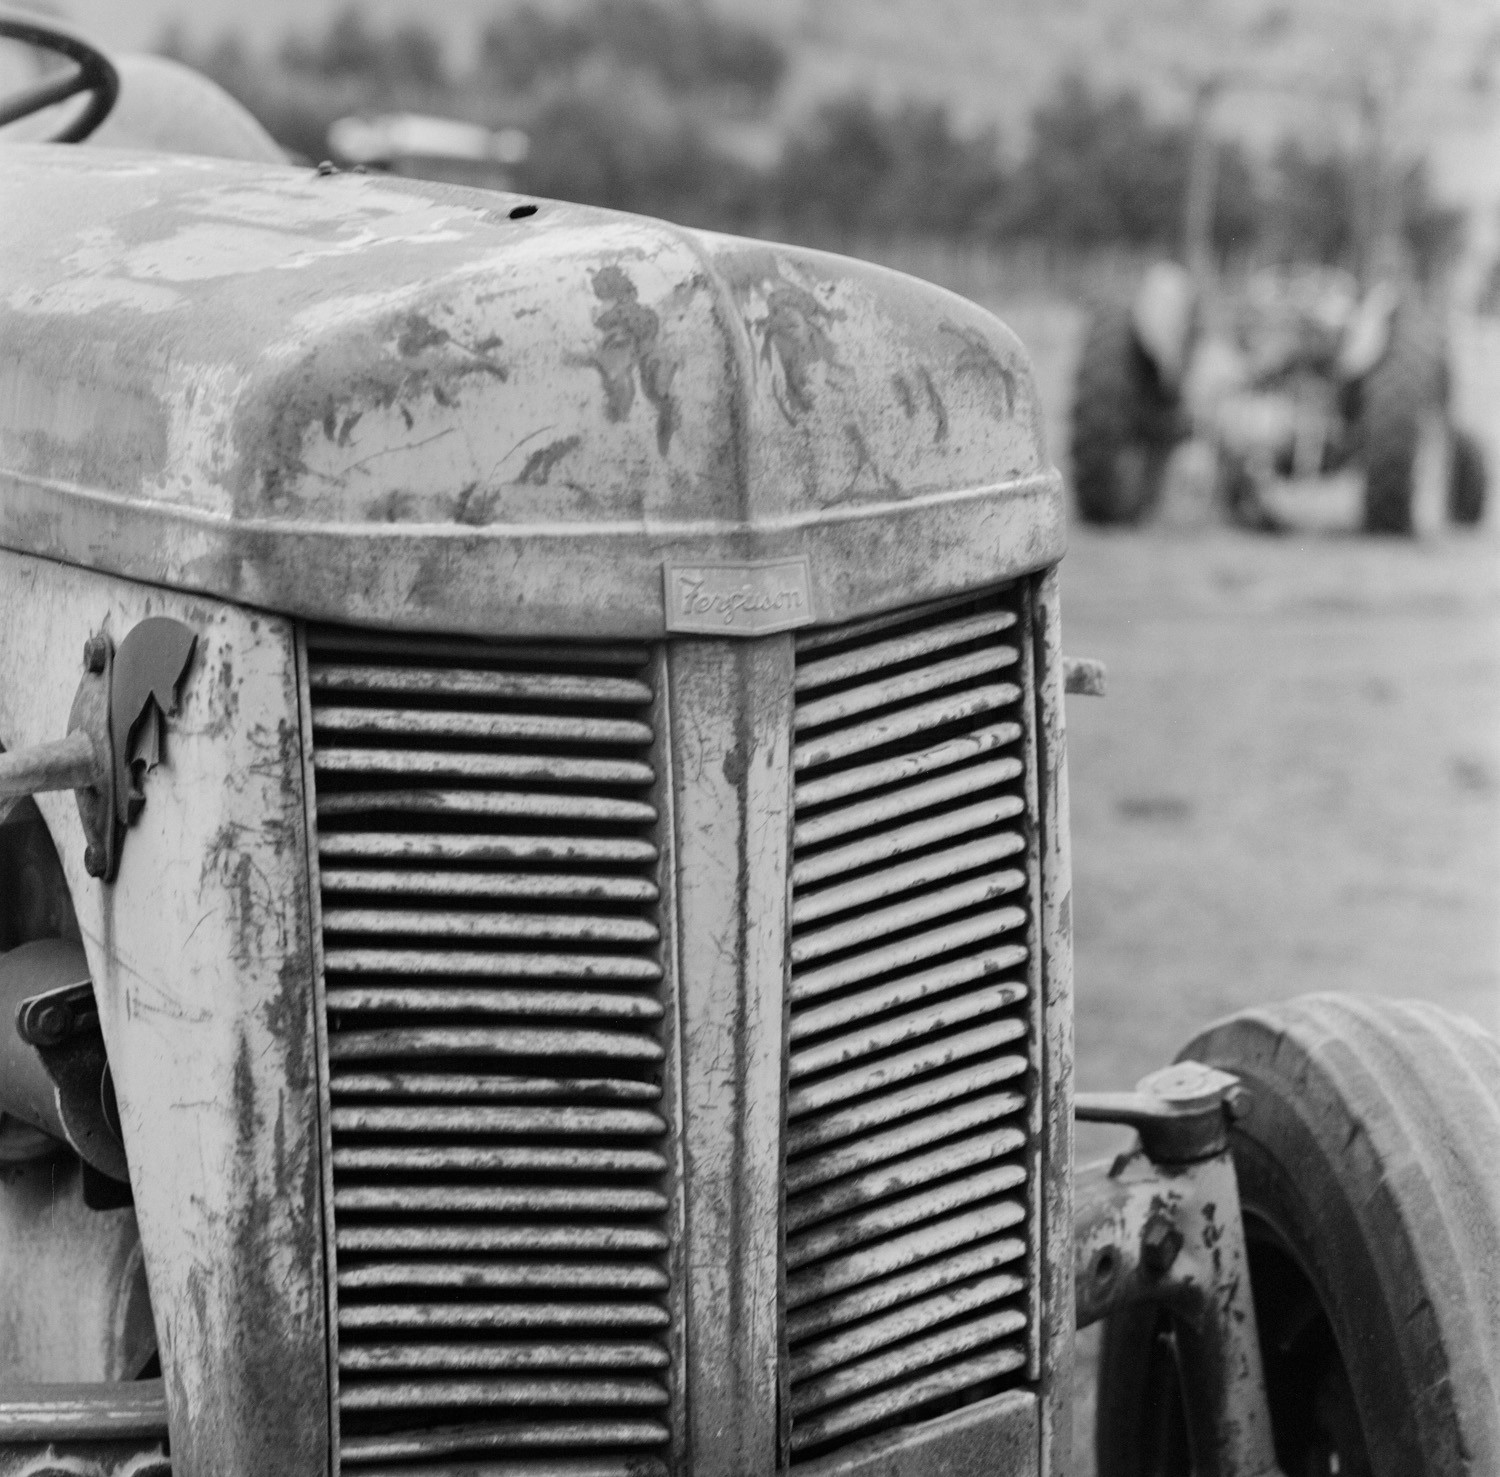 Old tractor  Film: Ilford Delta 100 Lens: 65mm f/3.5 Exposure:  not recorded  Near Kyneton, Vic, Australia